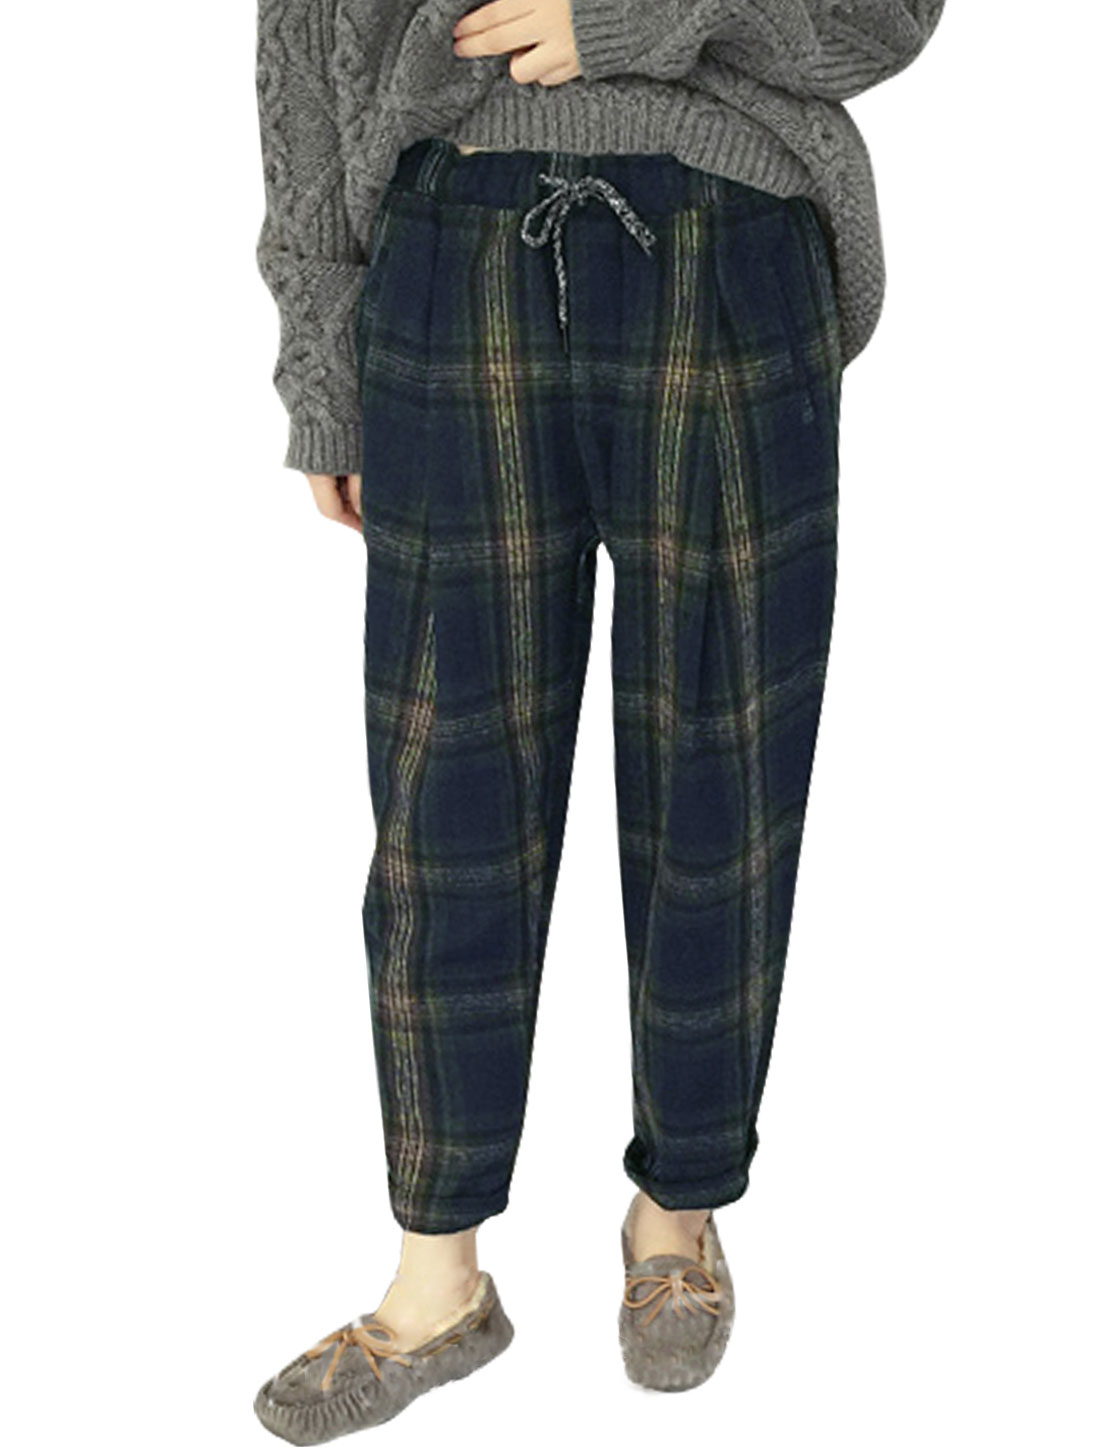 Women Drawstring Waist Slants Pockets Worsted Plaids Pants Blue XS